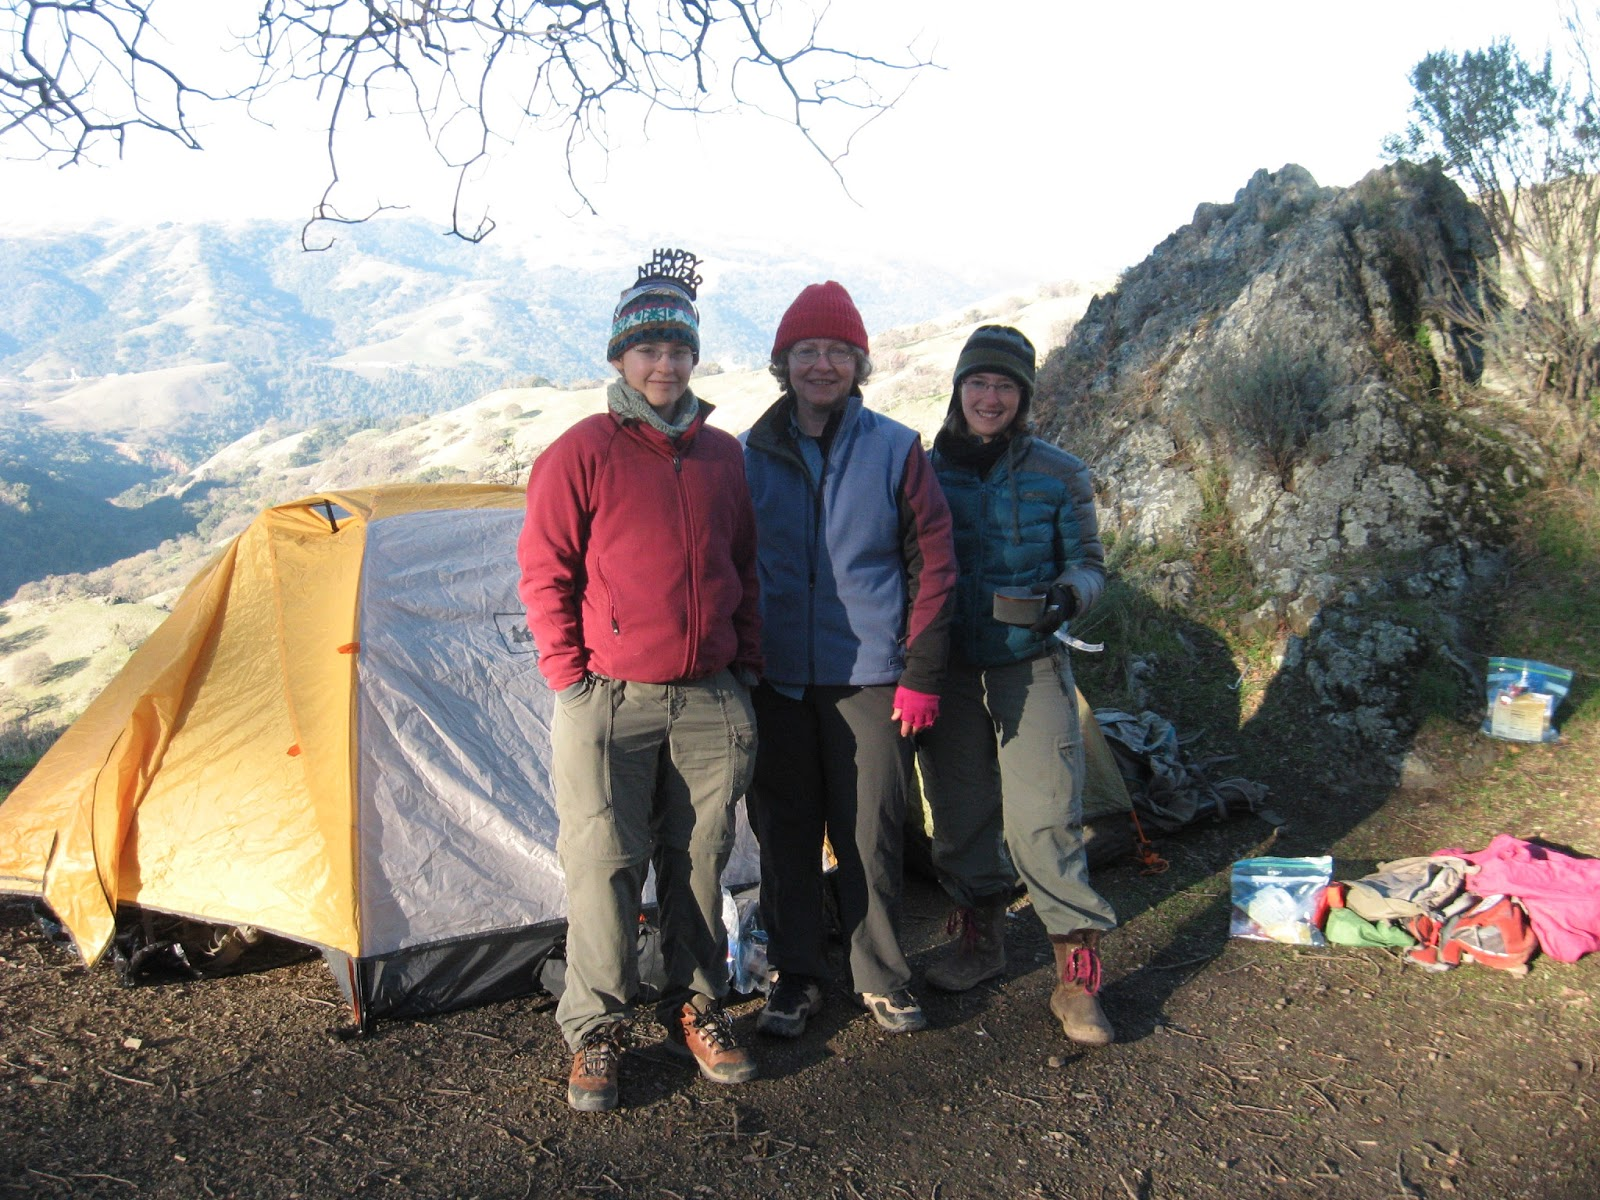 Backpacking story